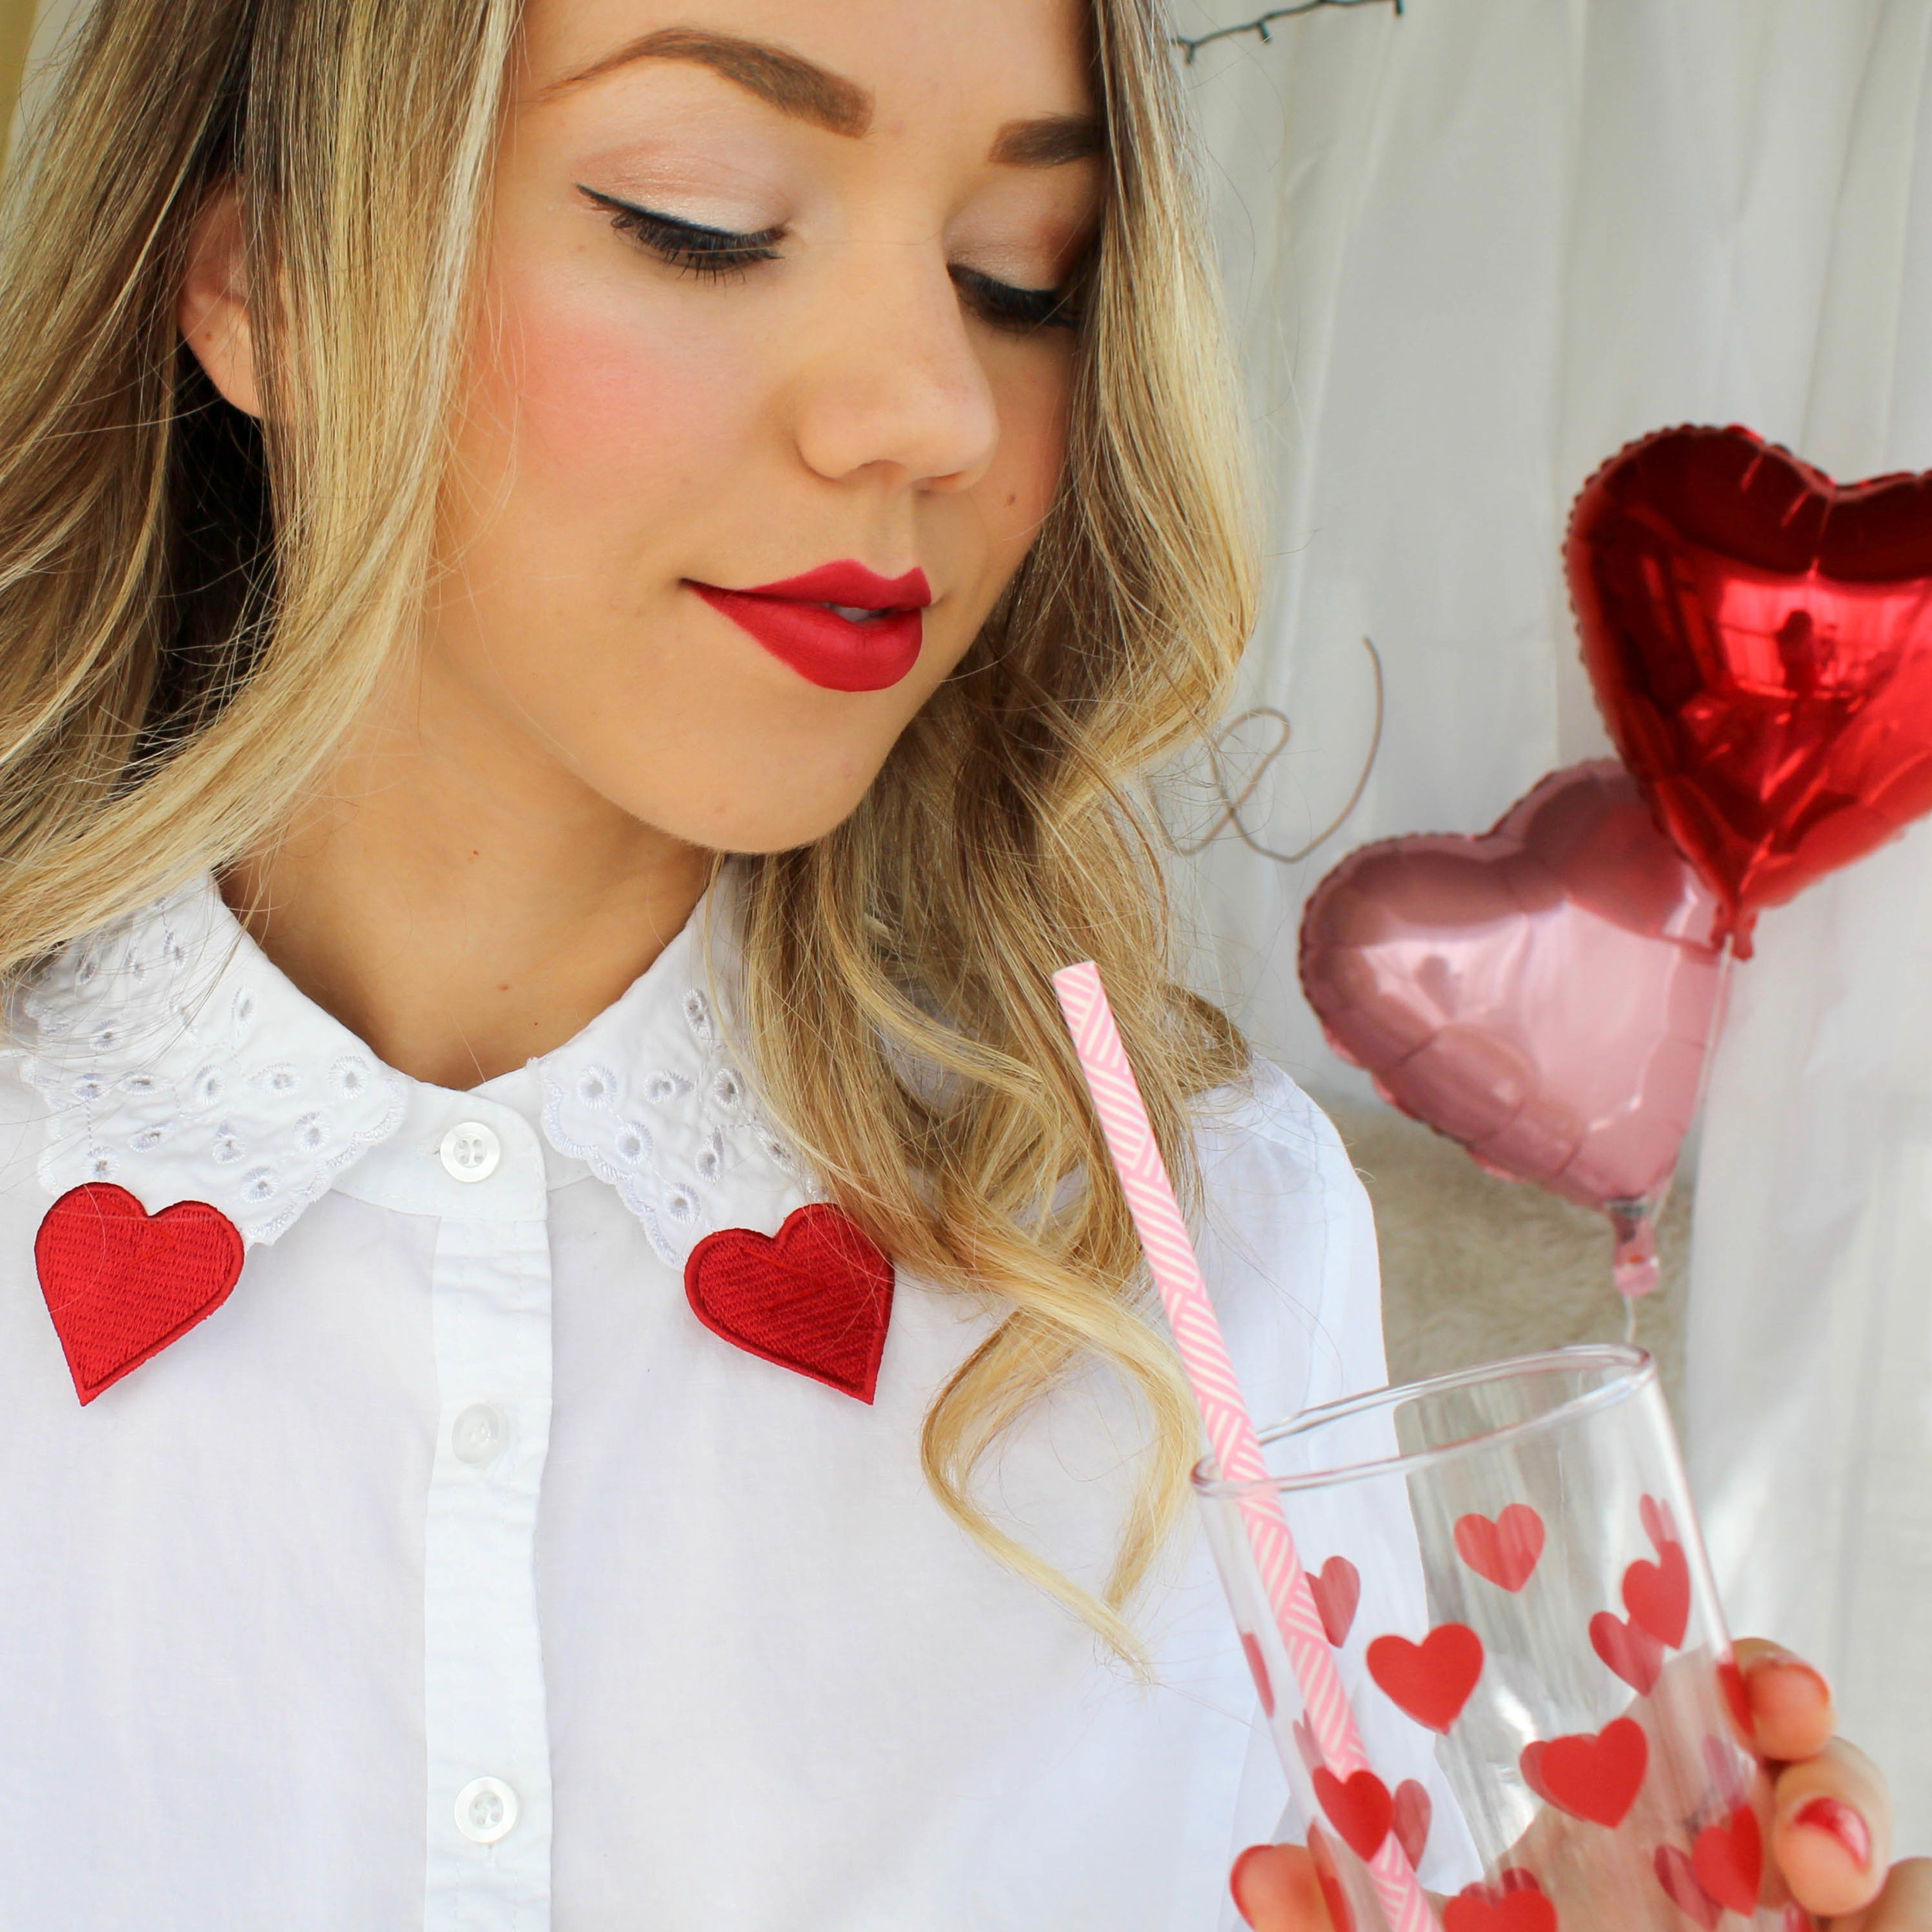 My #ootd featured this DIY heart patch collar that I made with a thrifted blouse and sew-on heart patches!